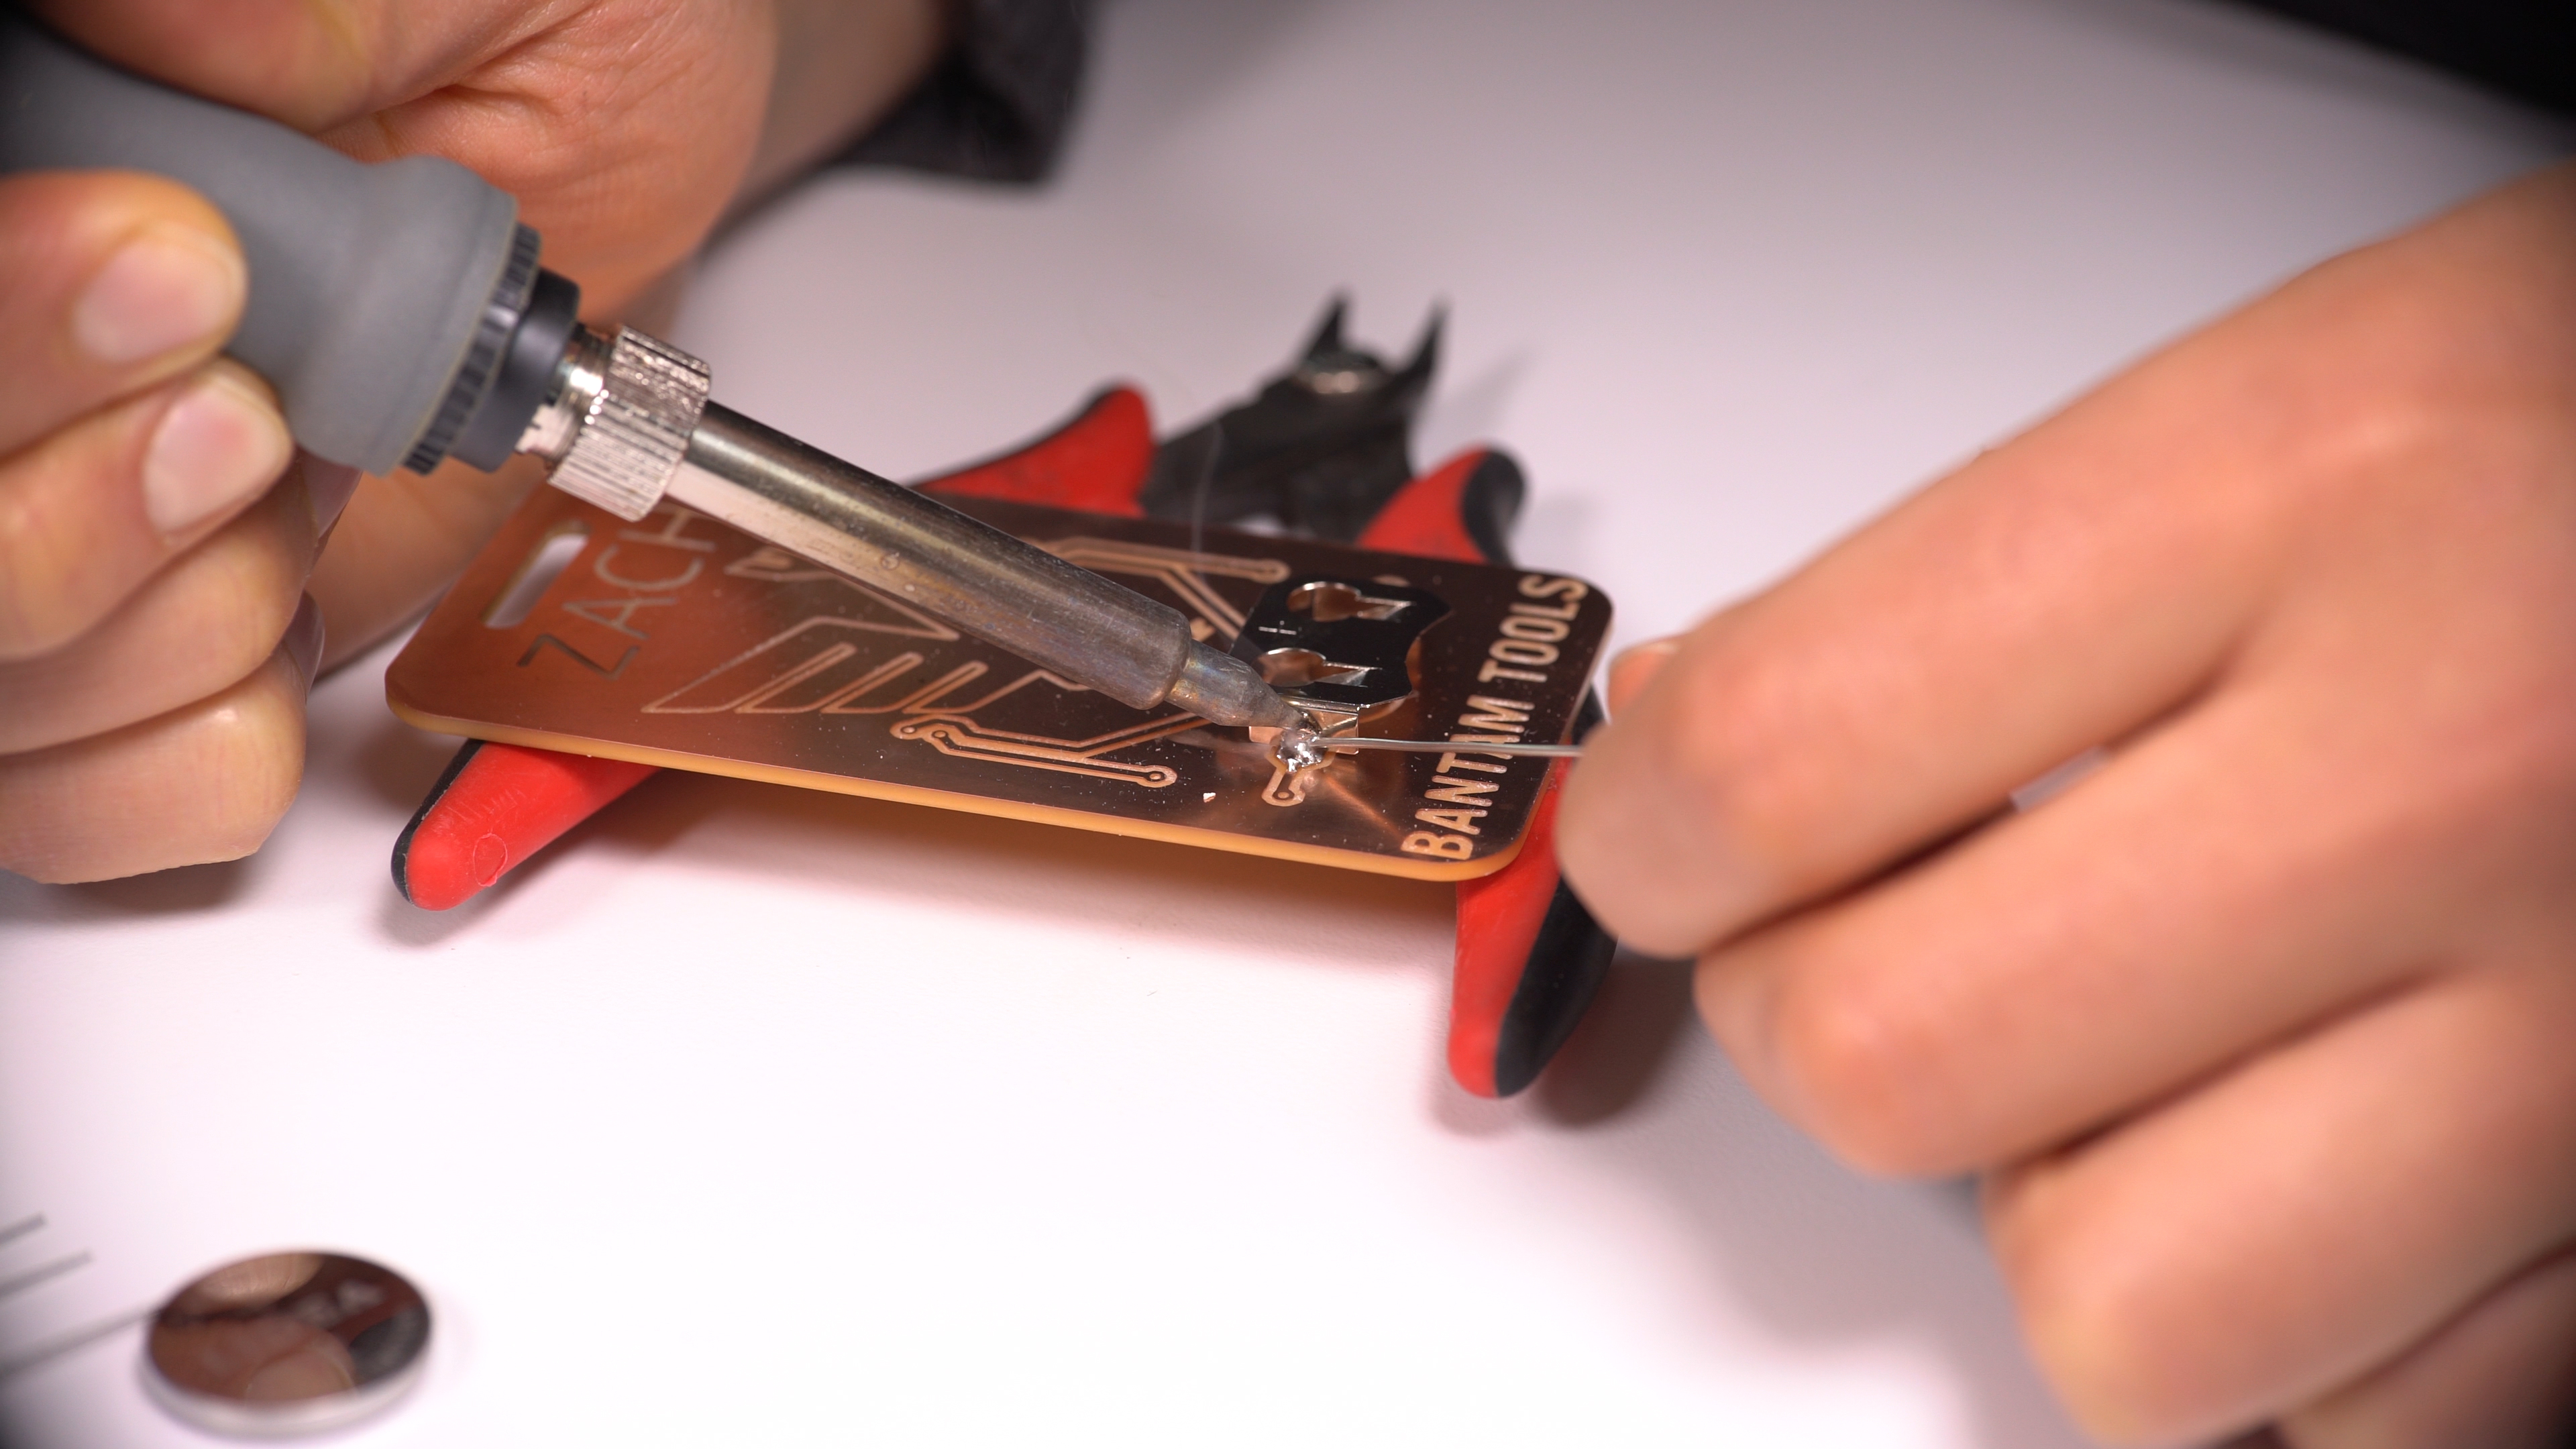 Soldering-Battery-Holder-PCB-Badge-Project-Bantam-Tools.jpg